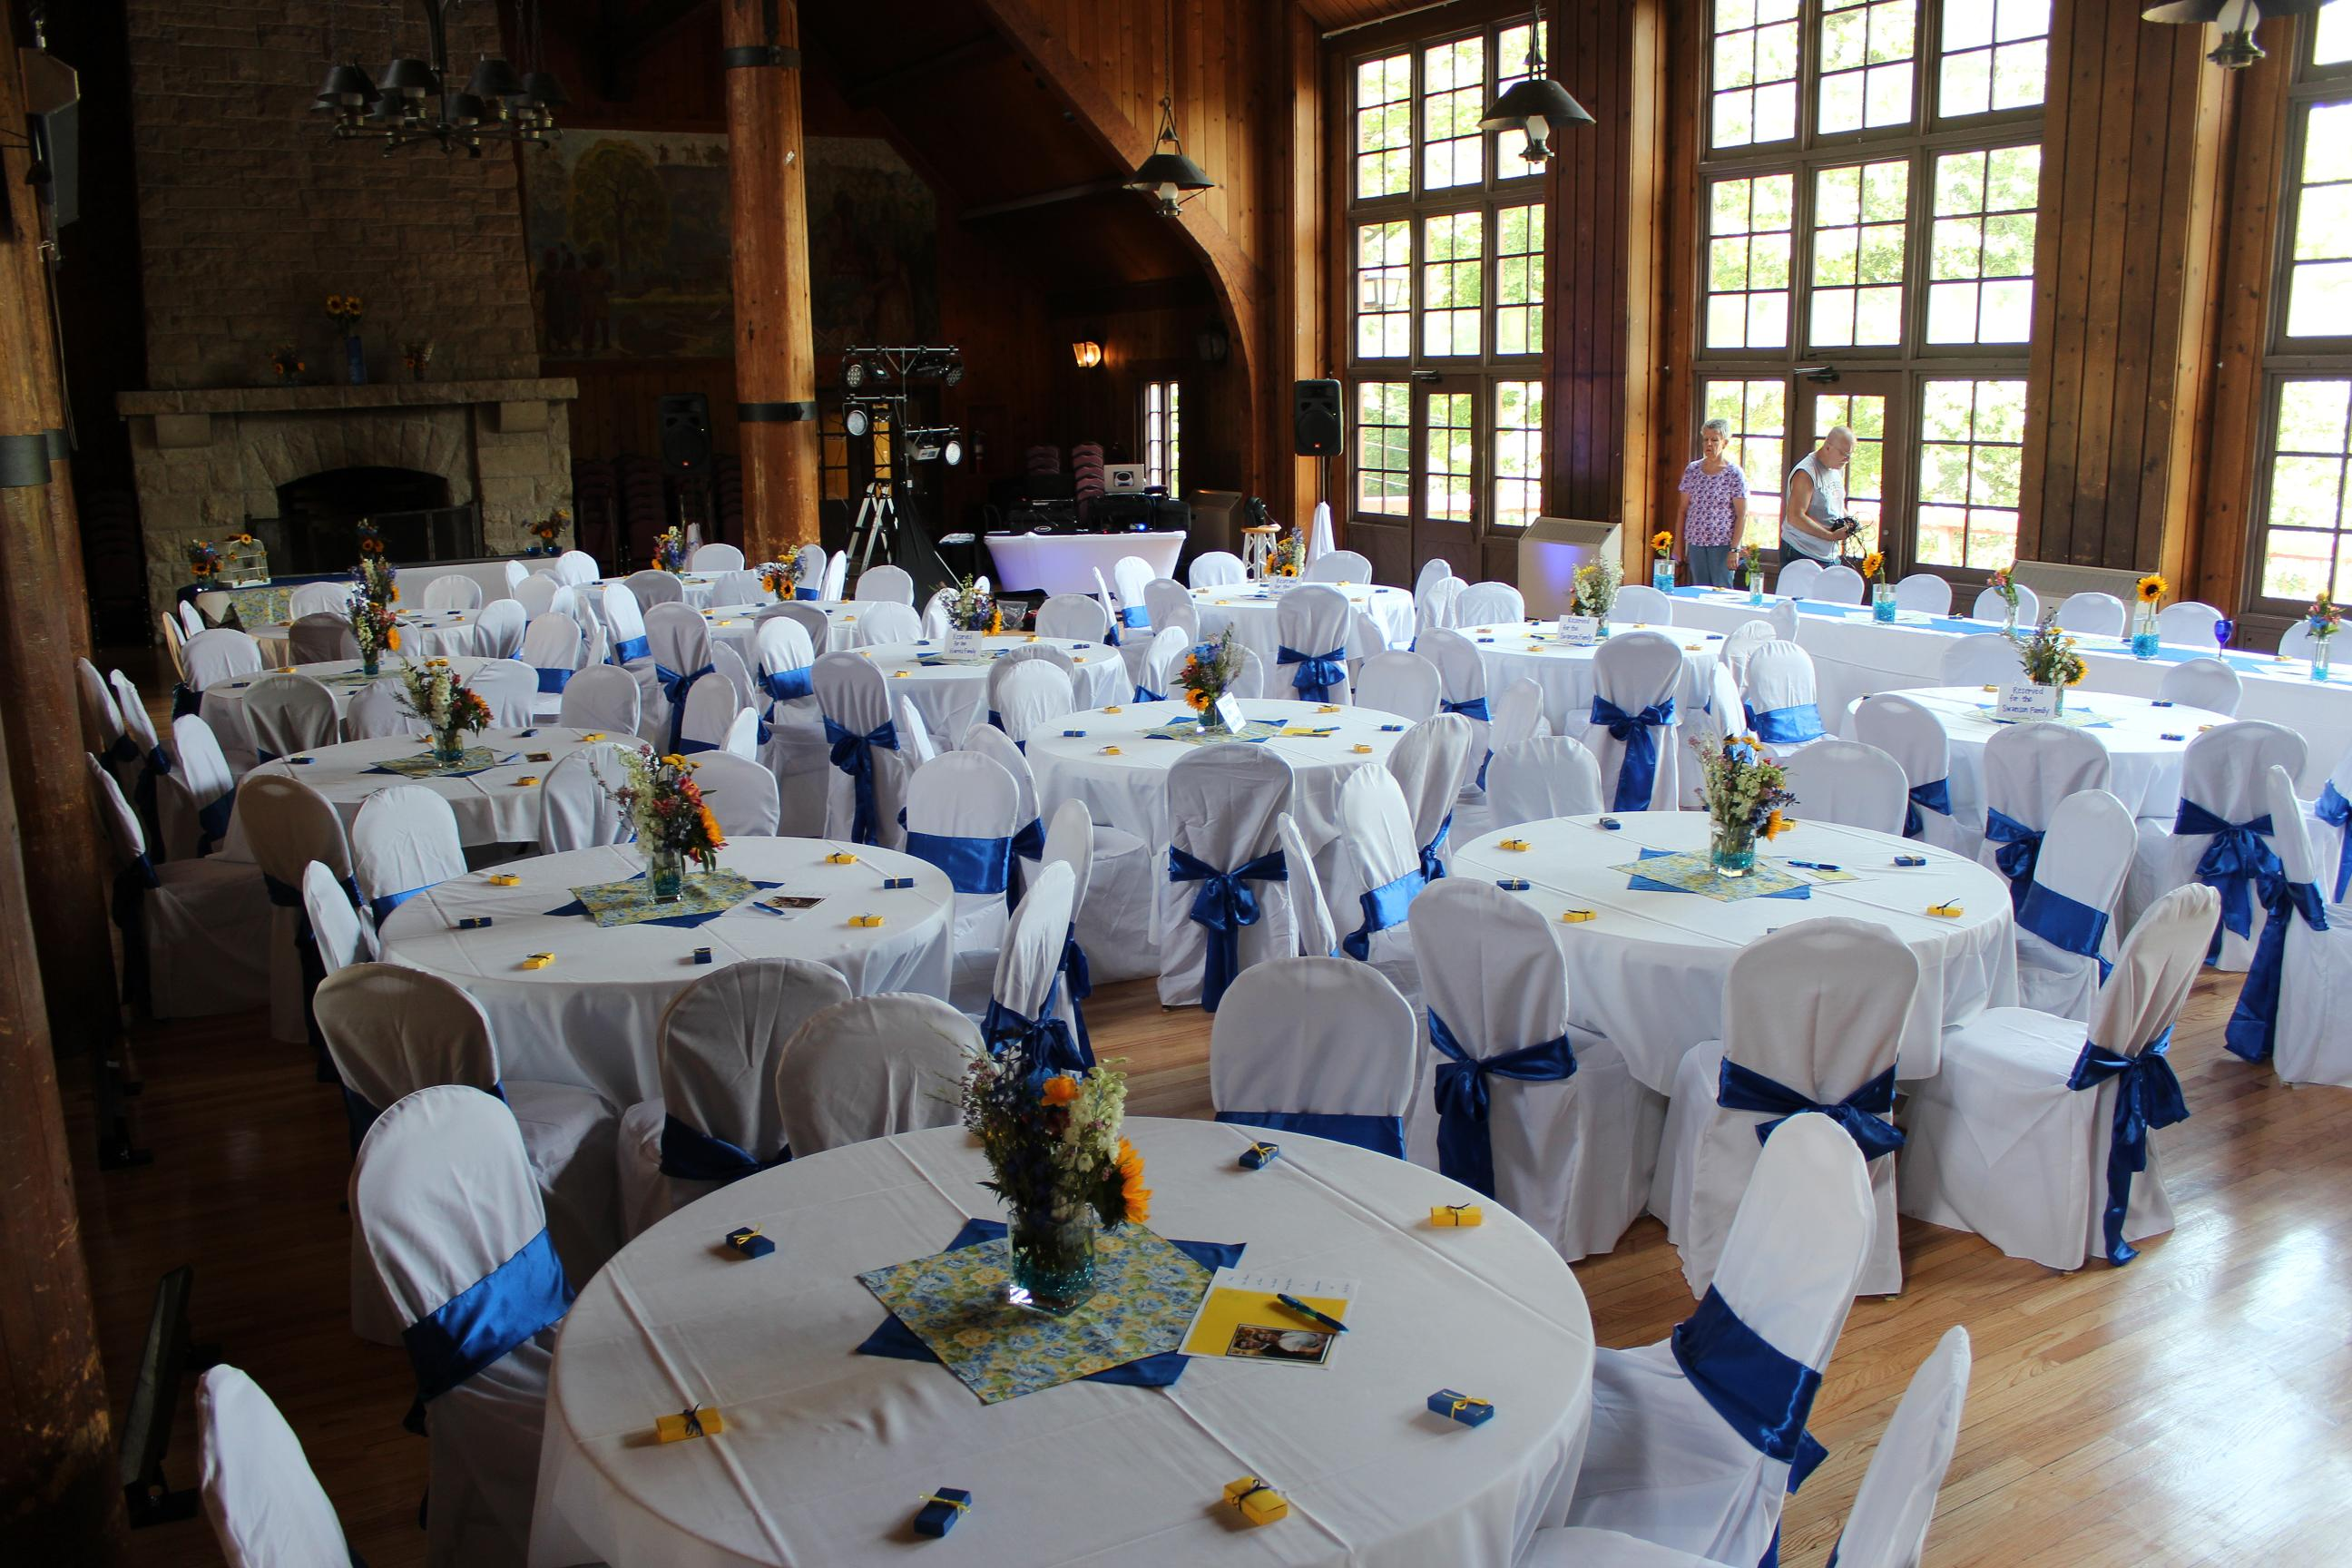 Cheap Wedding Chair Covers >> Cheap Chair Covers Chicago 1 Chair Cover Rentals Of Chicago